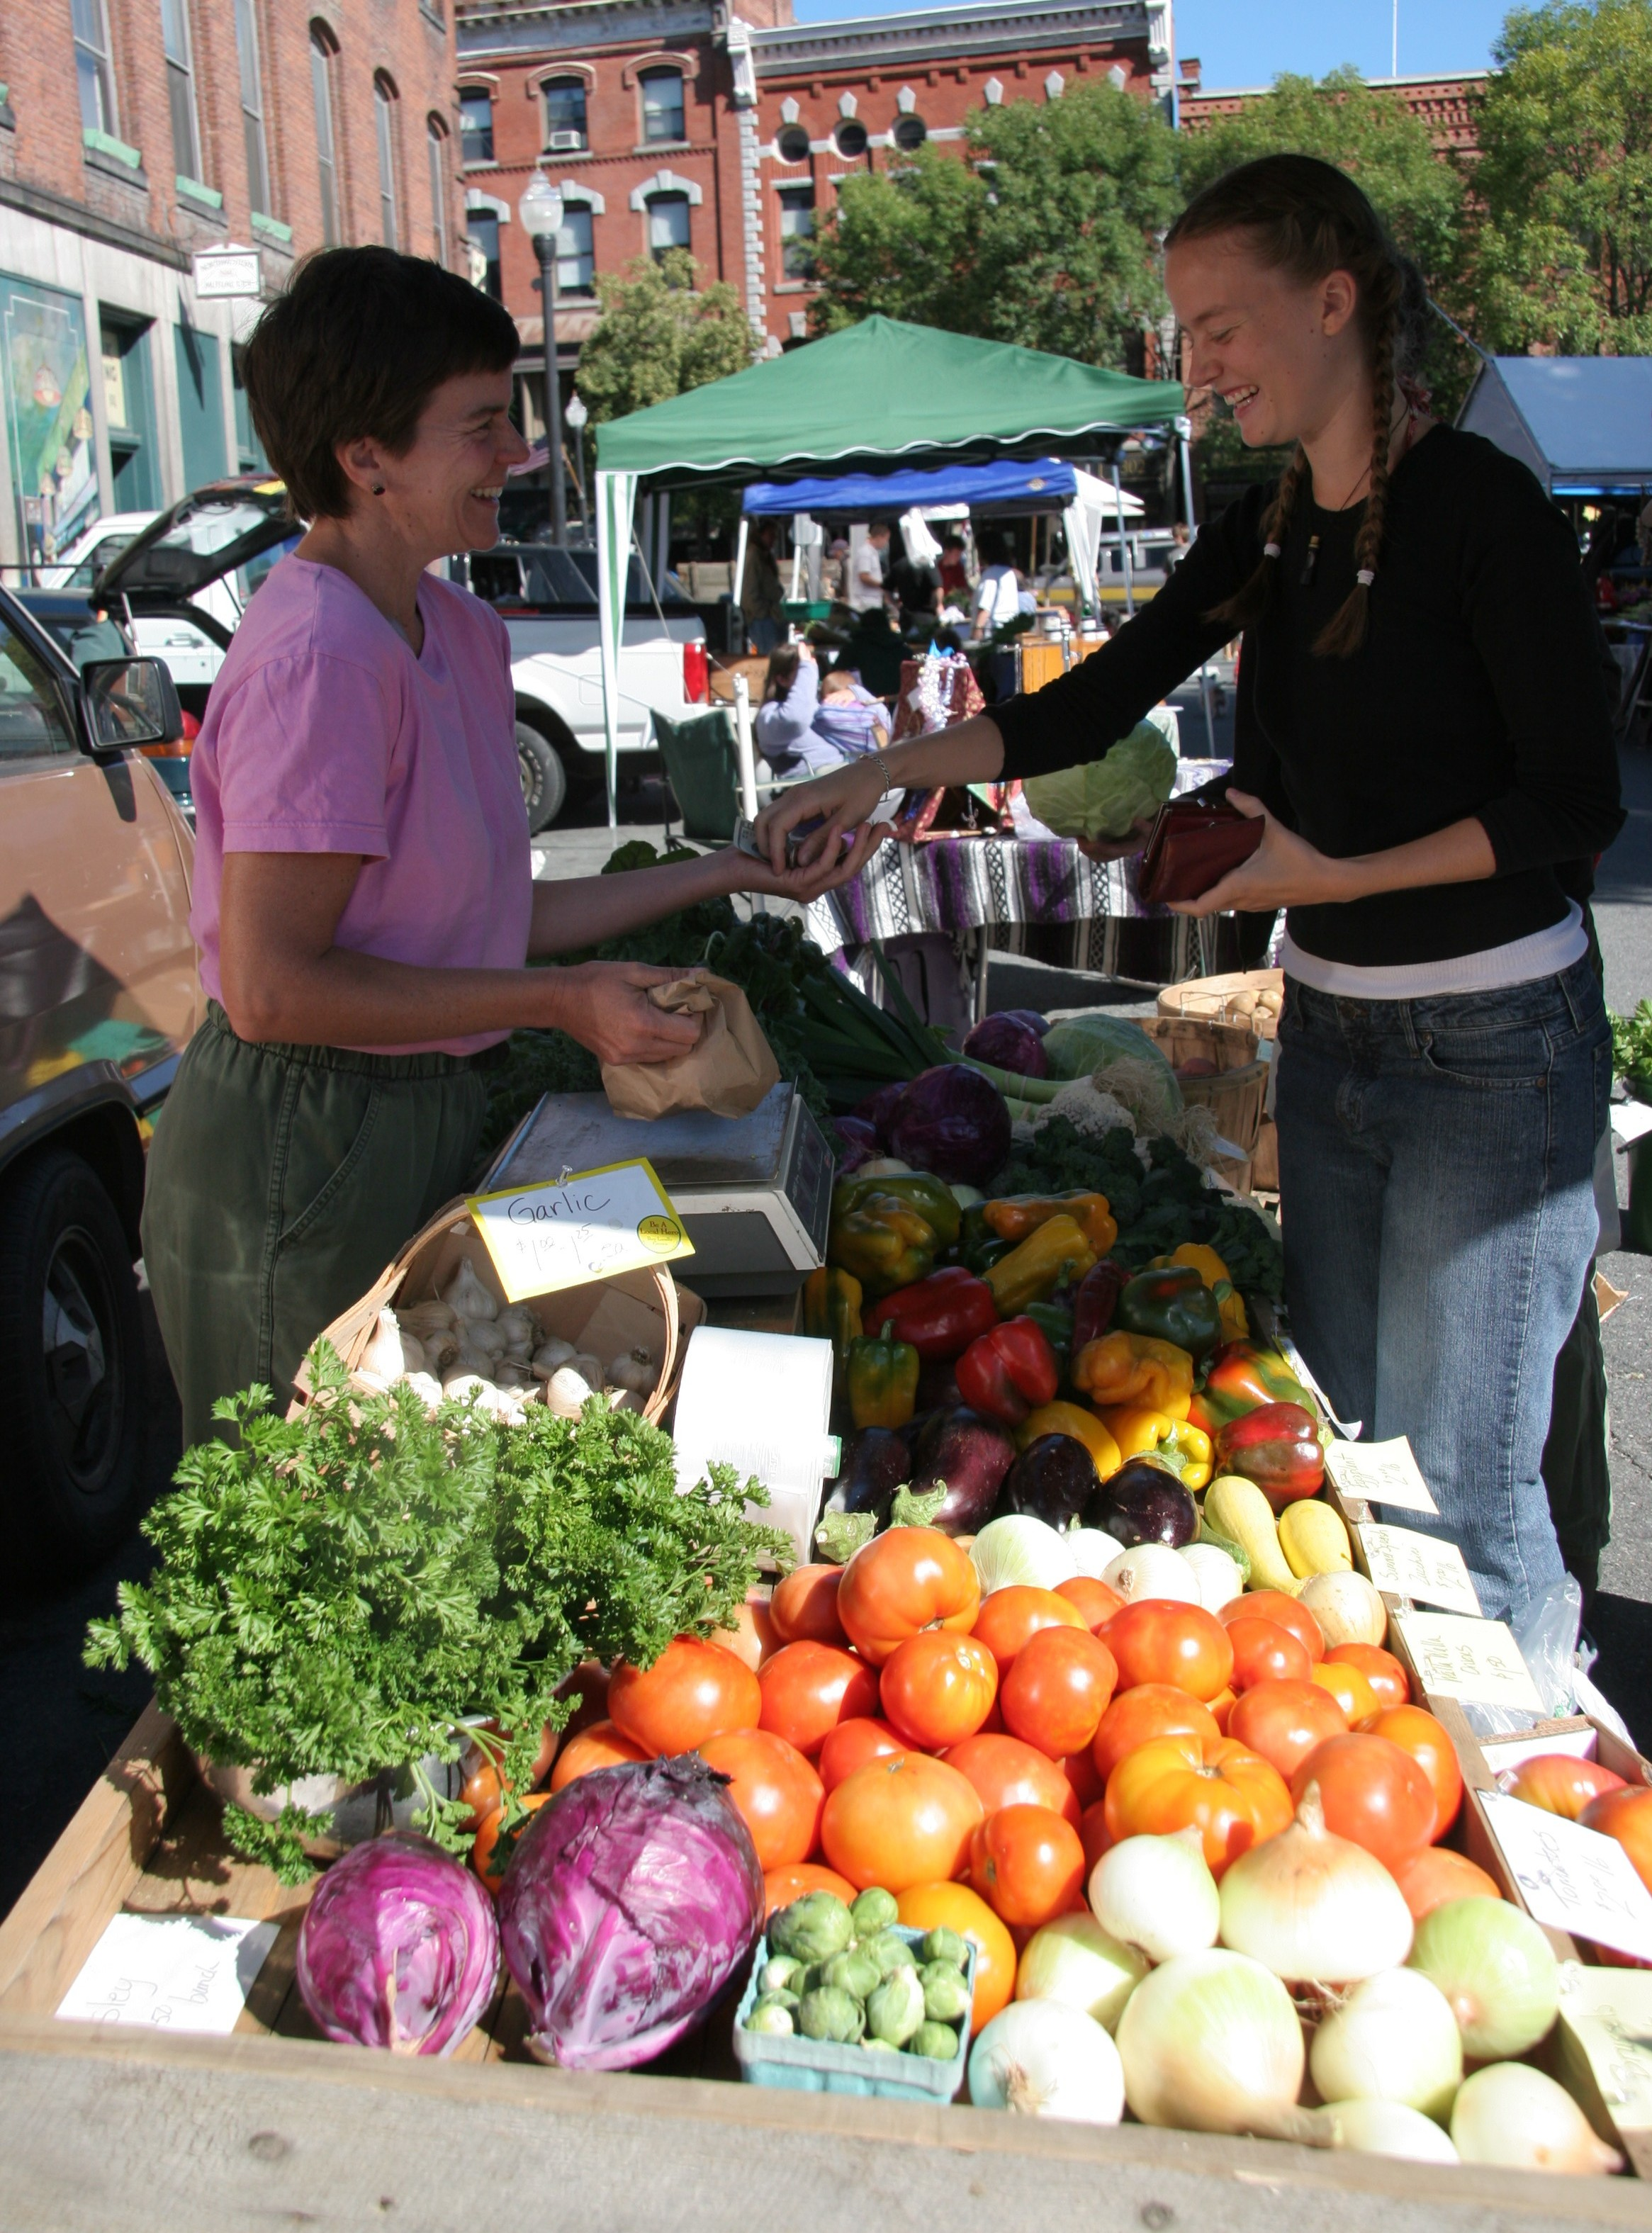 Successful Farmers Market Tips Part 3: Market Day